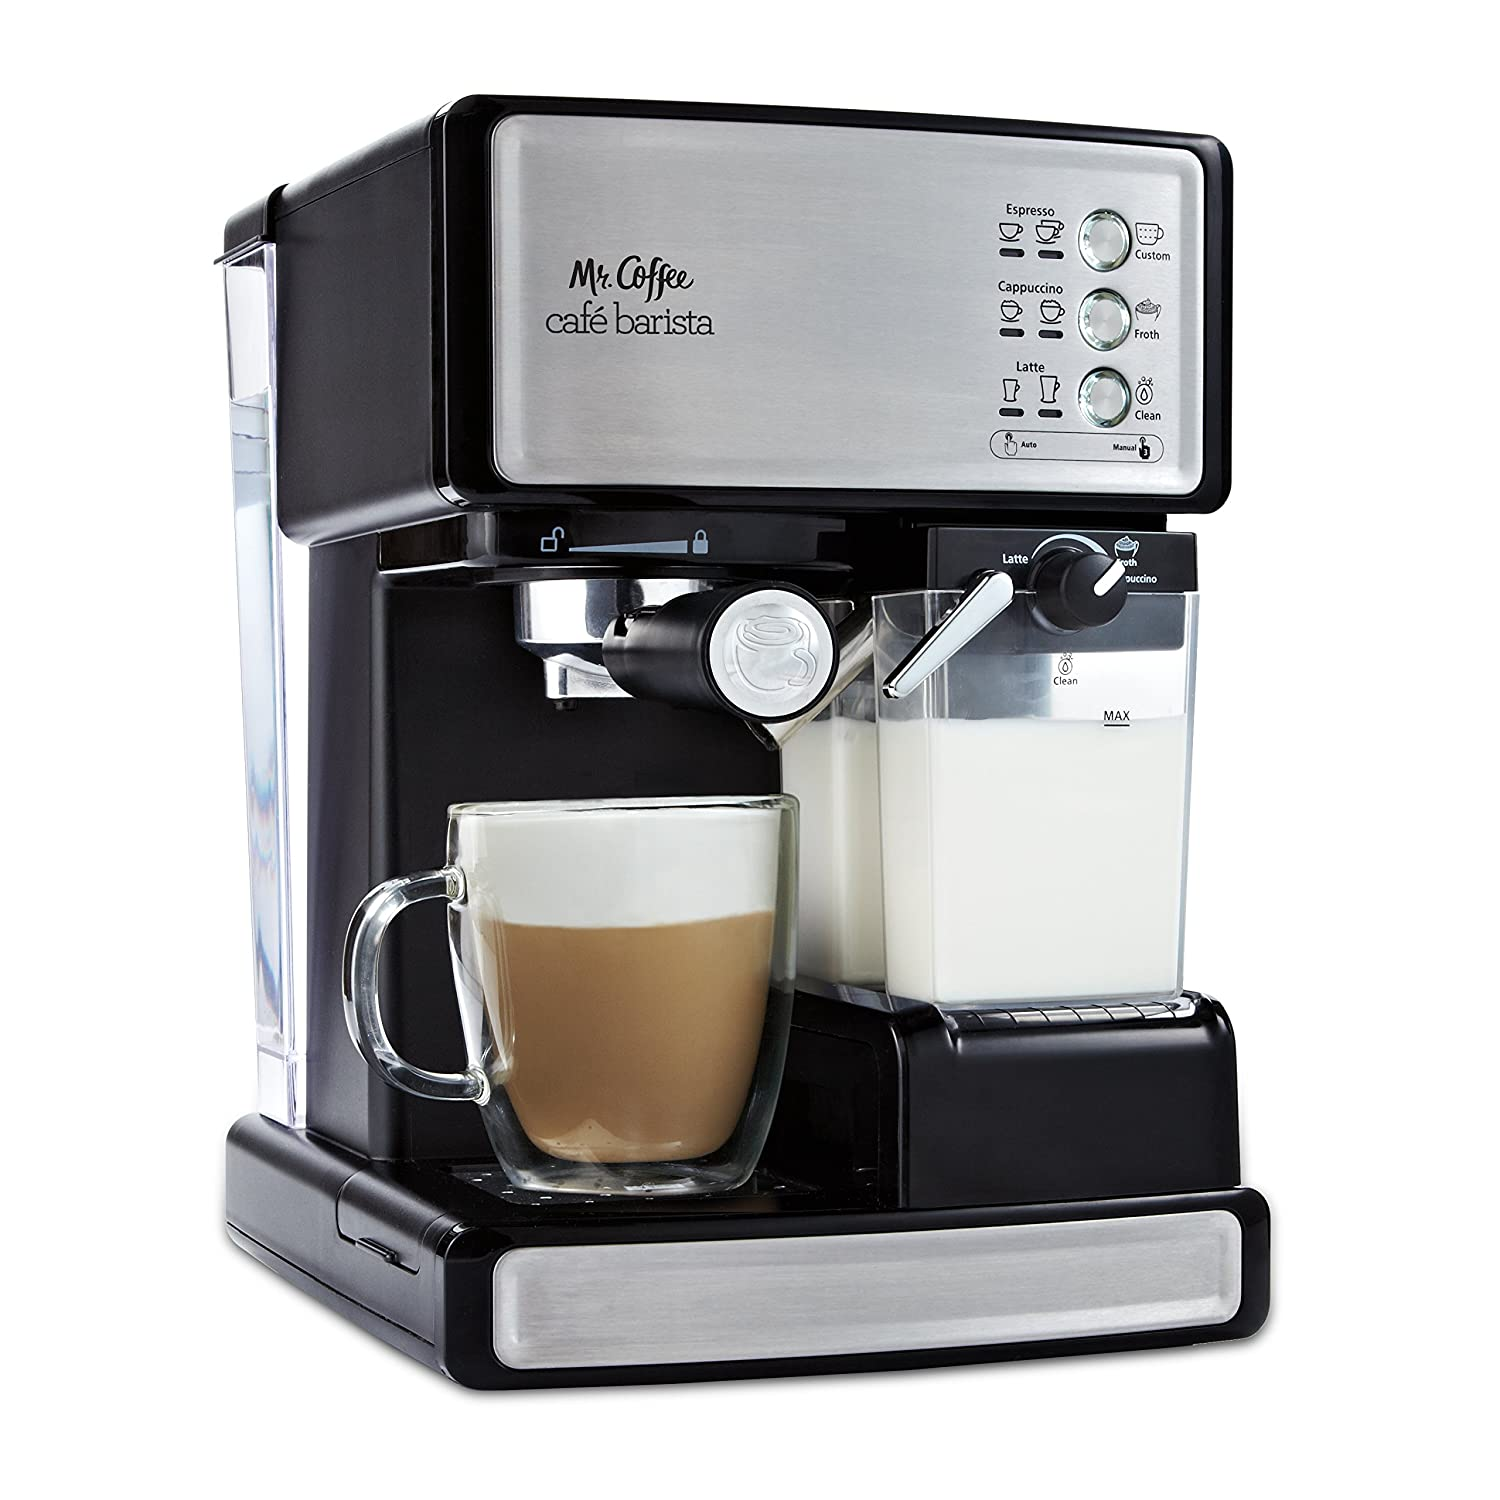 Top 10 Best Espresso Machines under $1000 (2019 Reviews & Buyer's Guide) 7